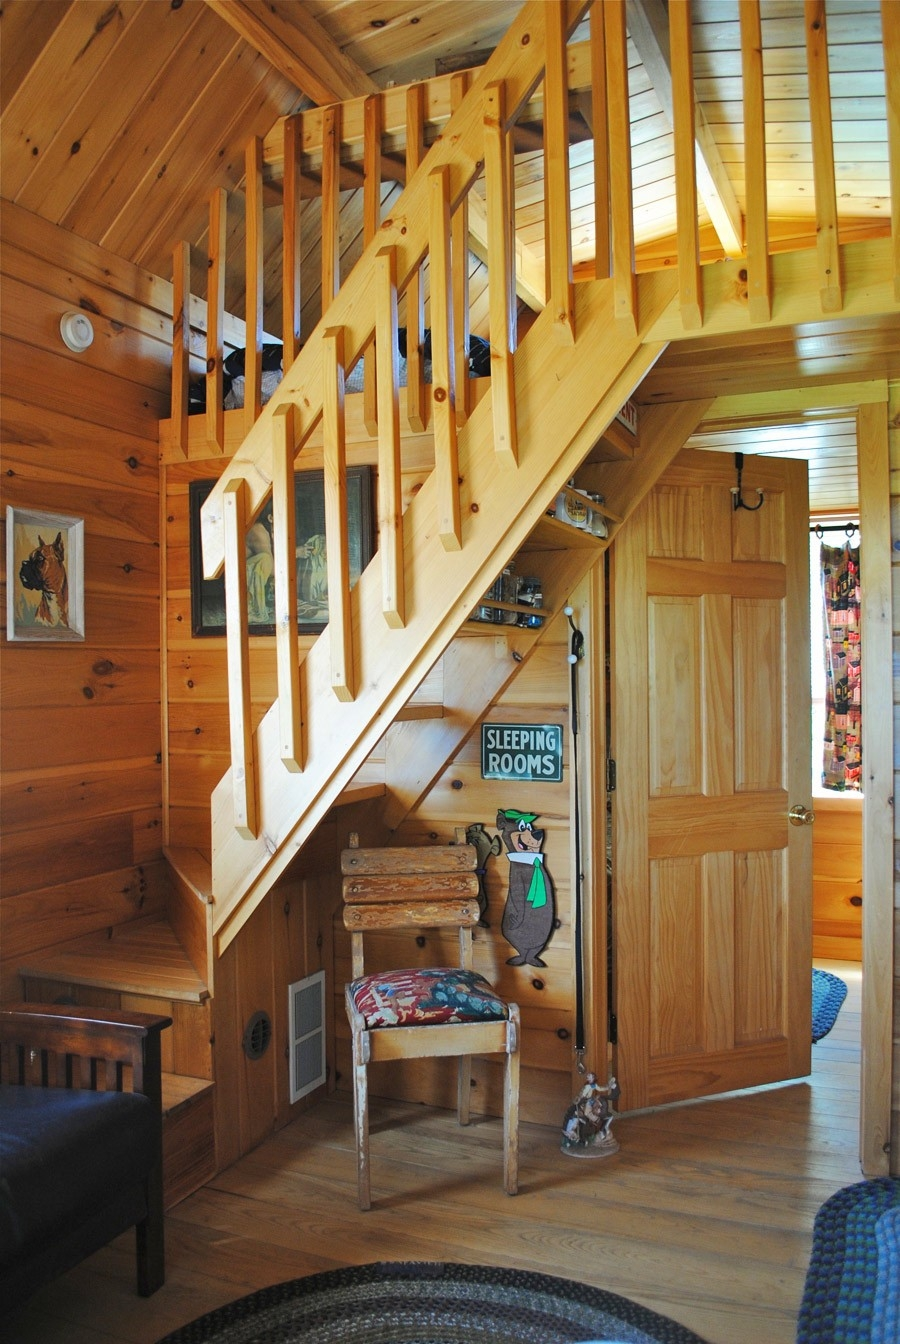 Loft With Stairs For 2020 Ideas On Foter   Tiny Home Spiral Staircase   Multi Purpose   Stair   Creative   Bedroom   Rooftop Deck